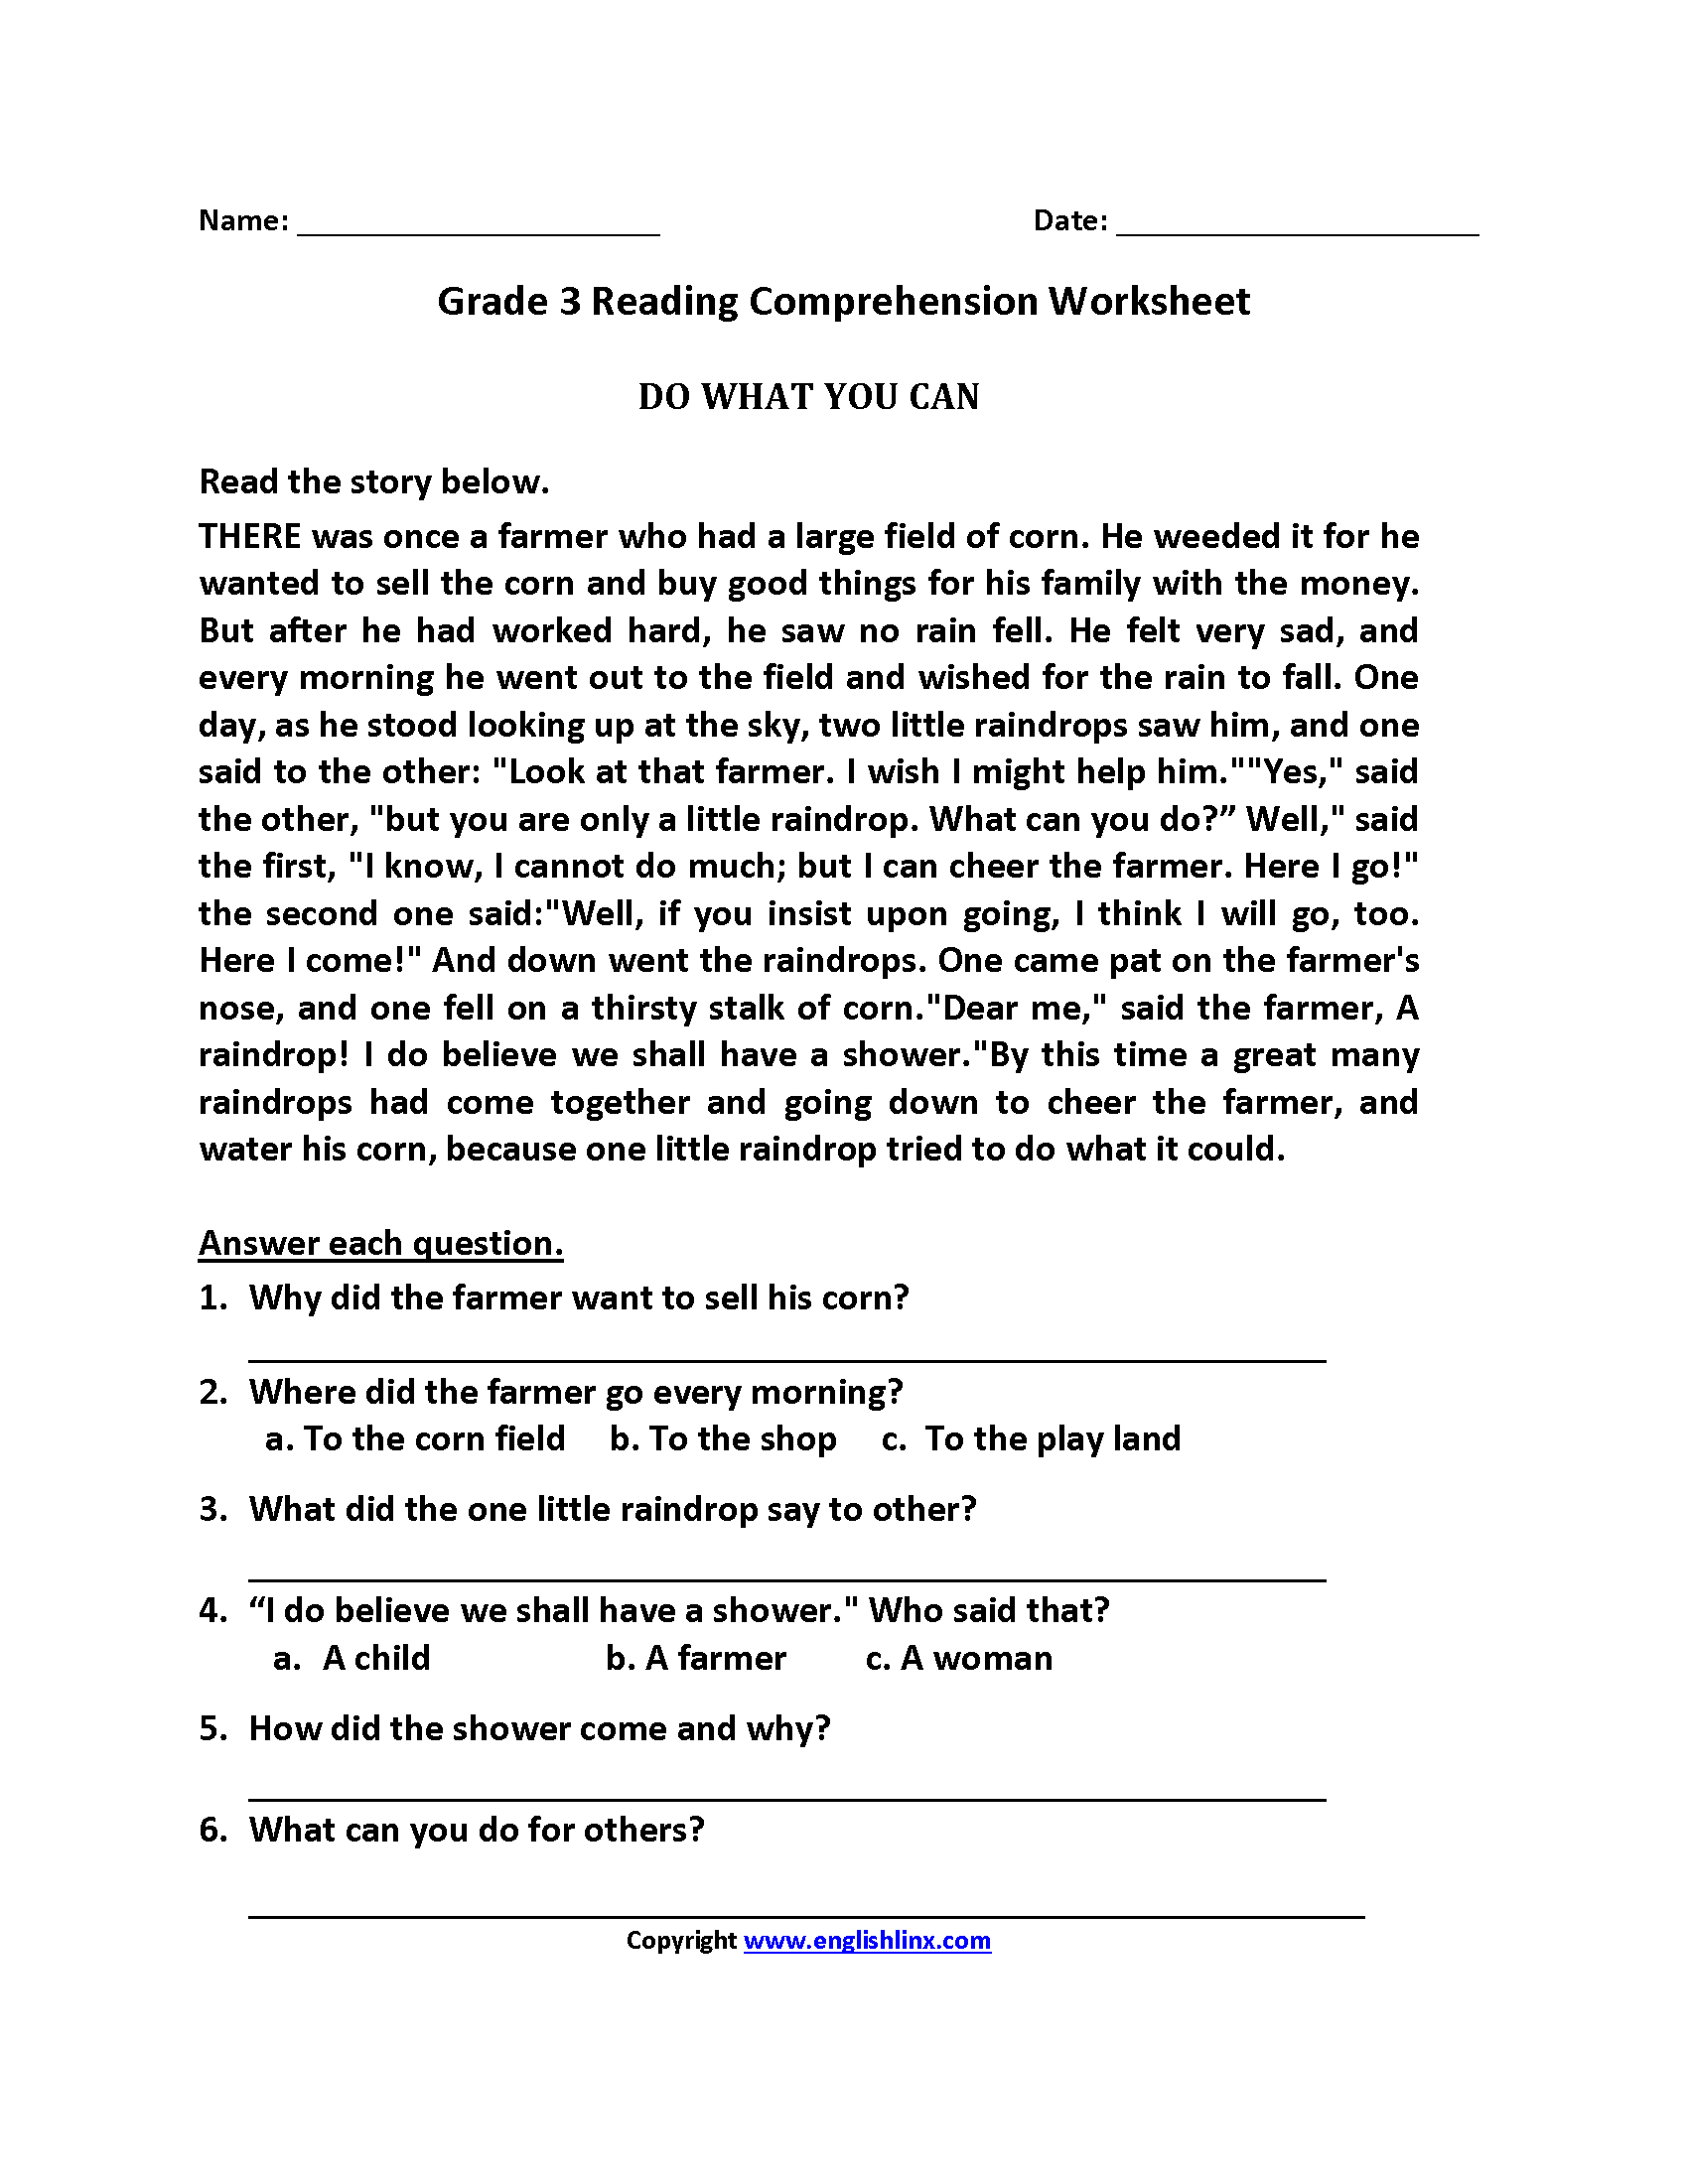 Do What You Can Third Grade Reading Worksheets